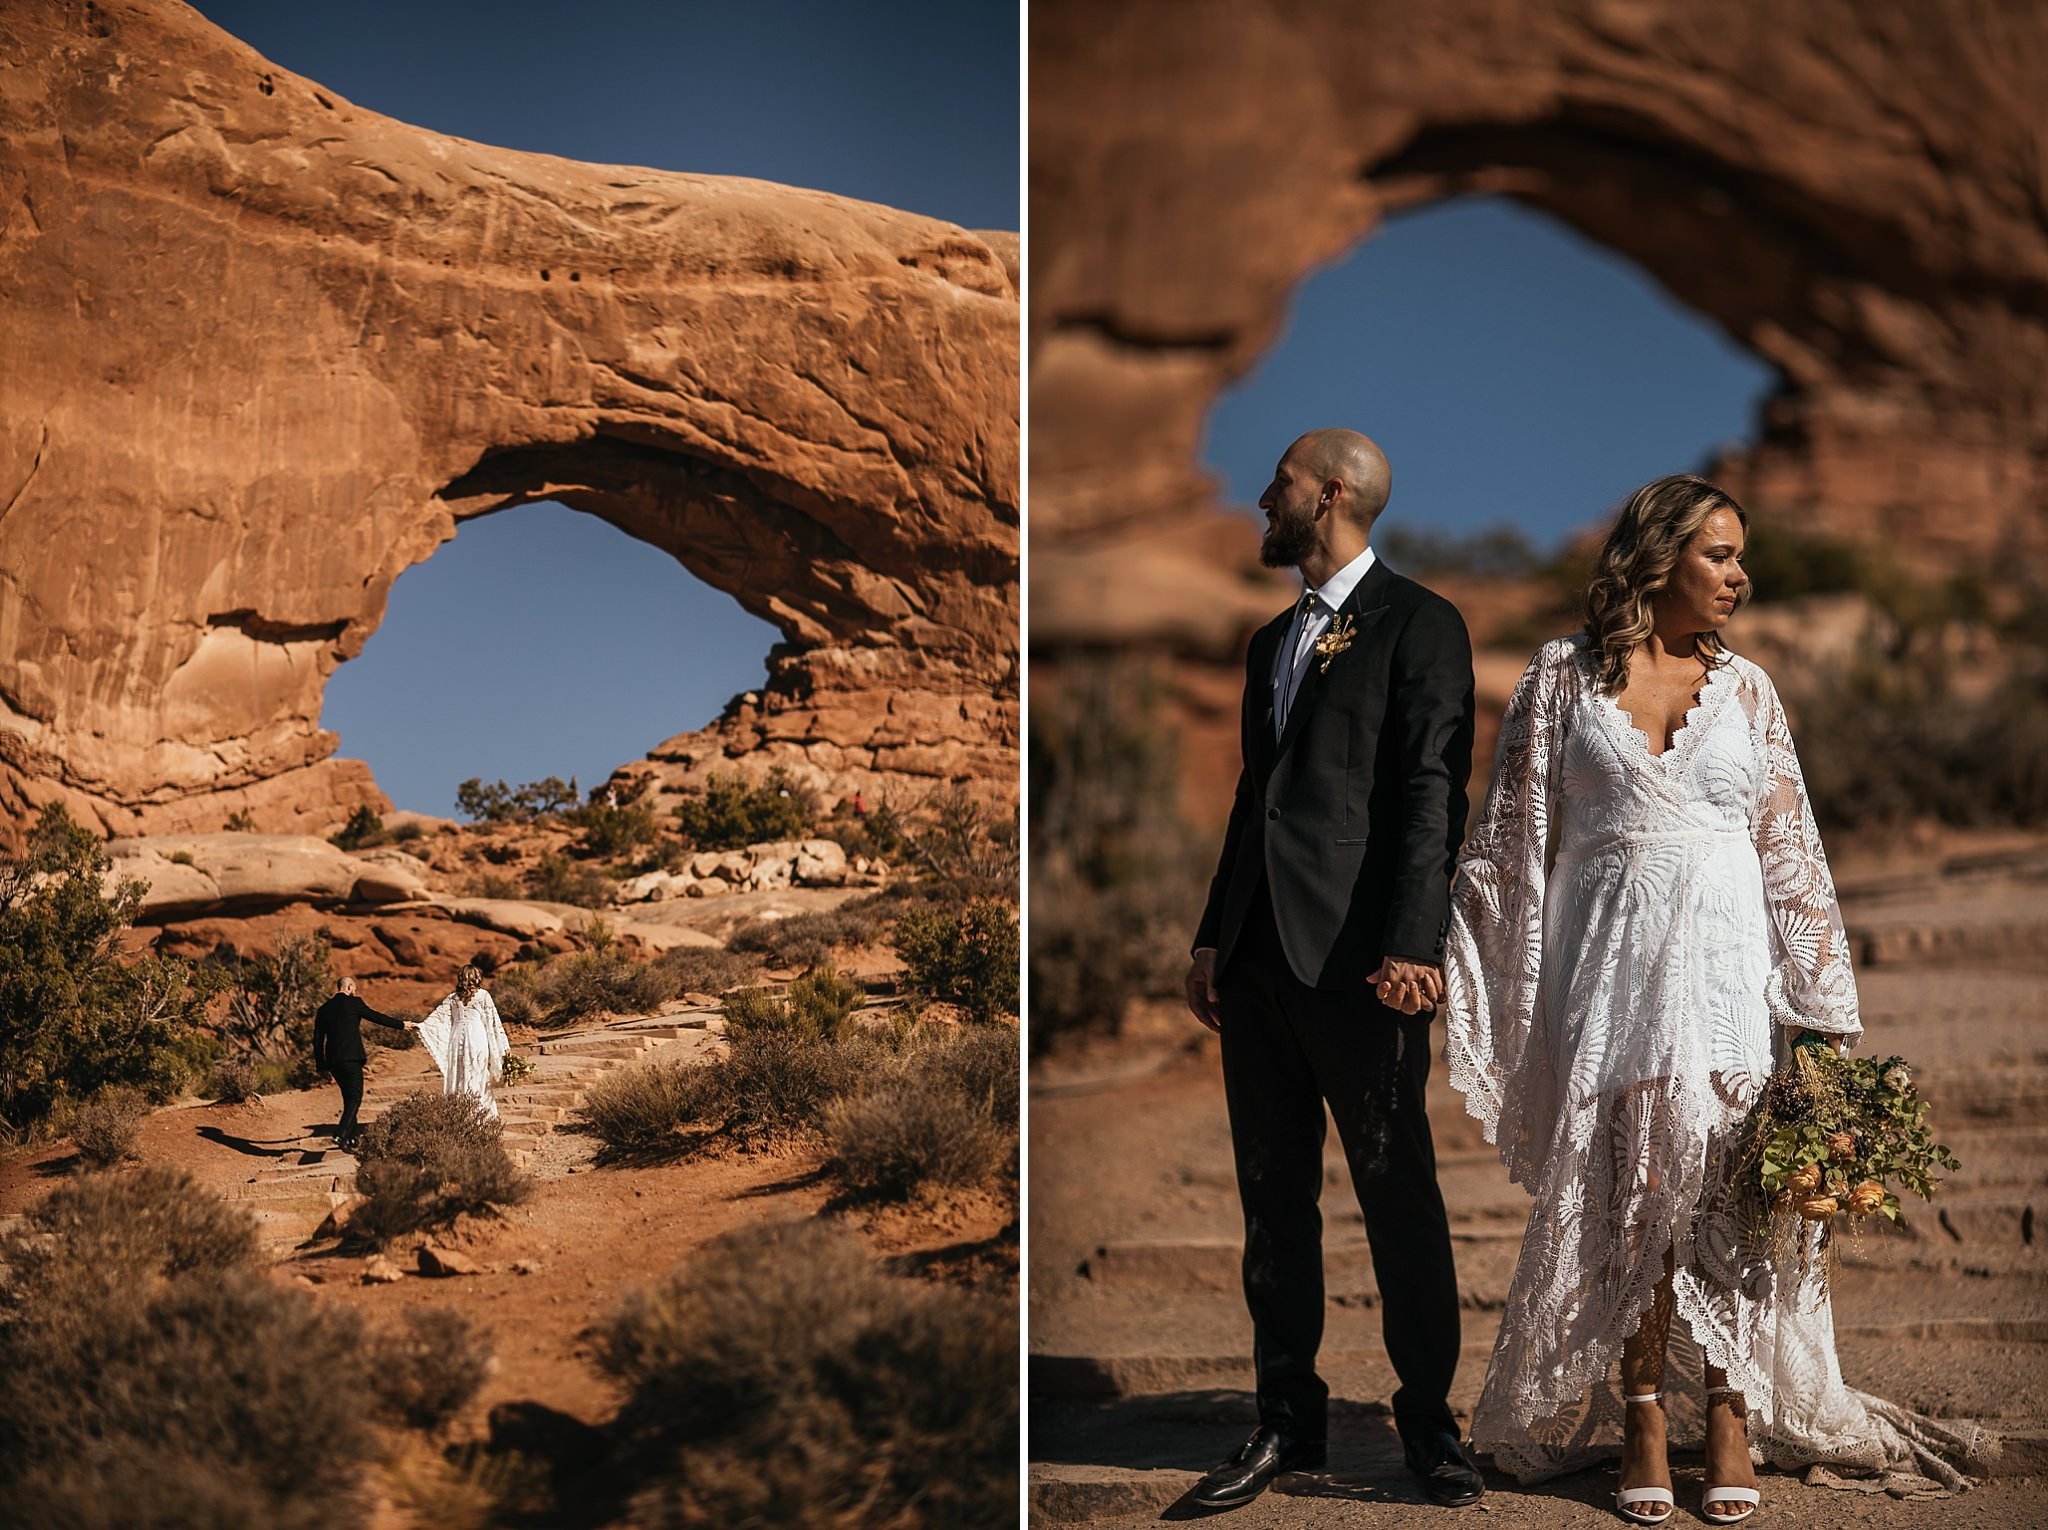 Bride and Groom taking Portraits in Arches National Park